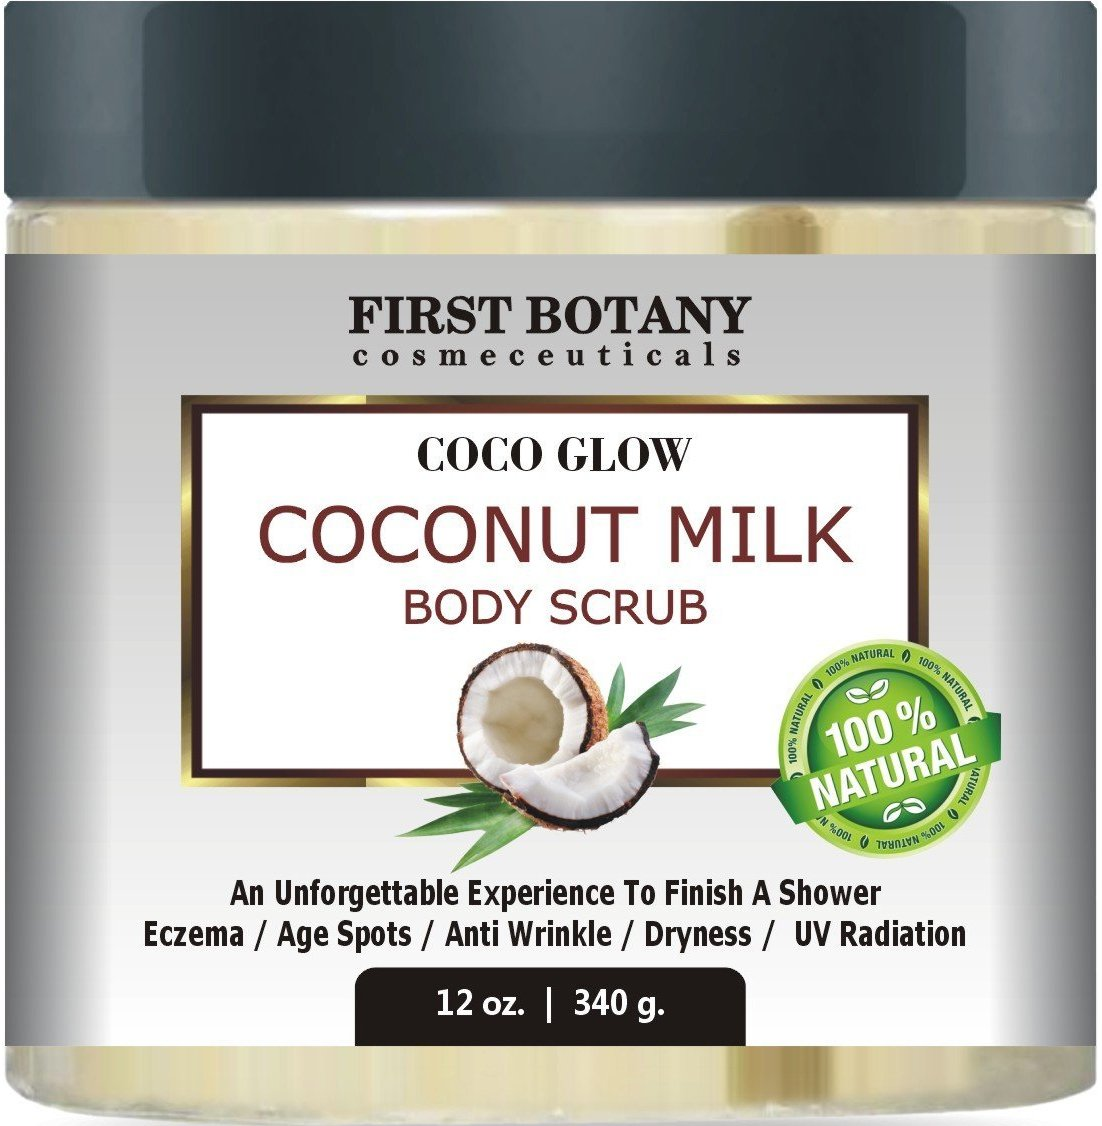 100% Natural Coconut Milk Body Polish 12 oz. With Dead Sea Salt and Vitamin E. Powerful Body Scrub Exfoliator and Daily Moisturizer For All Skin Types First Botany Cosmeceuticals